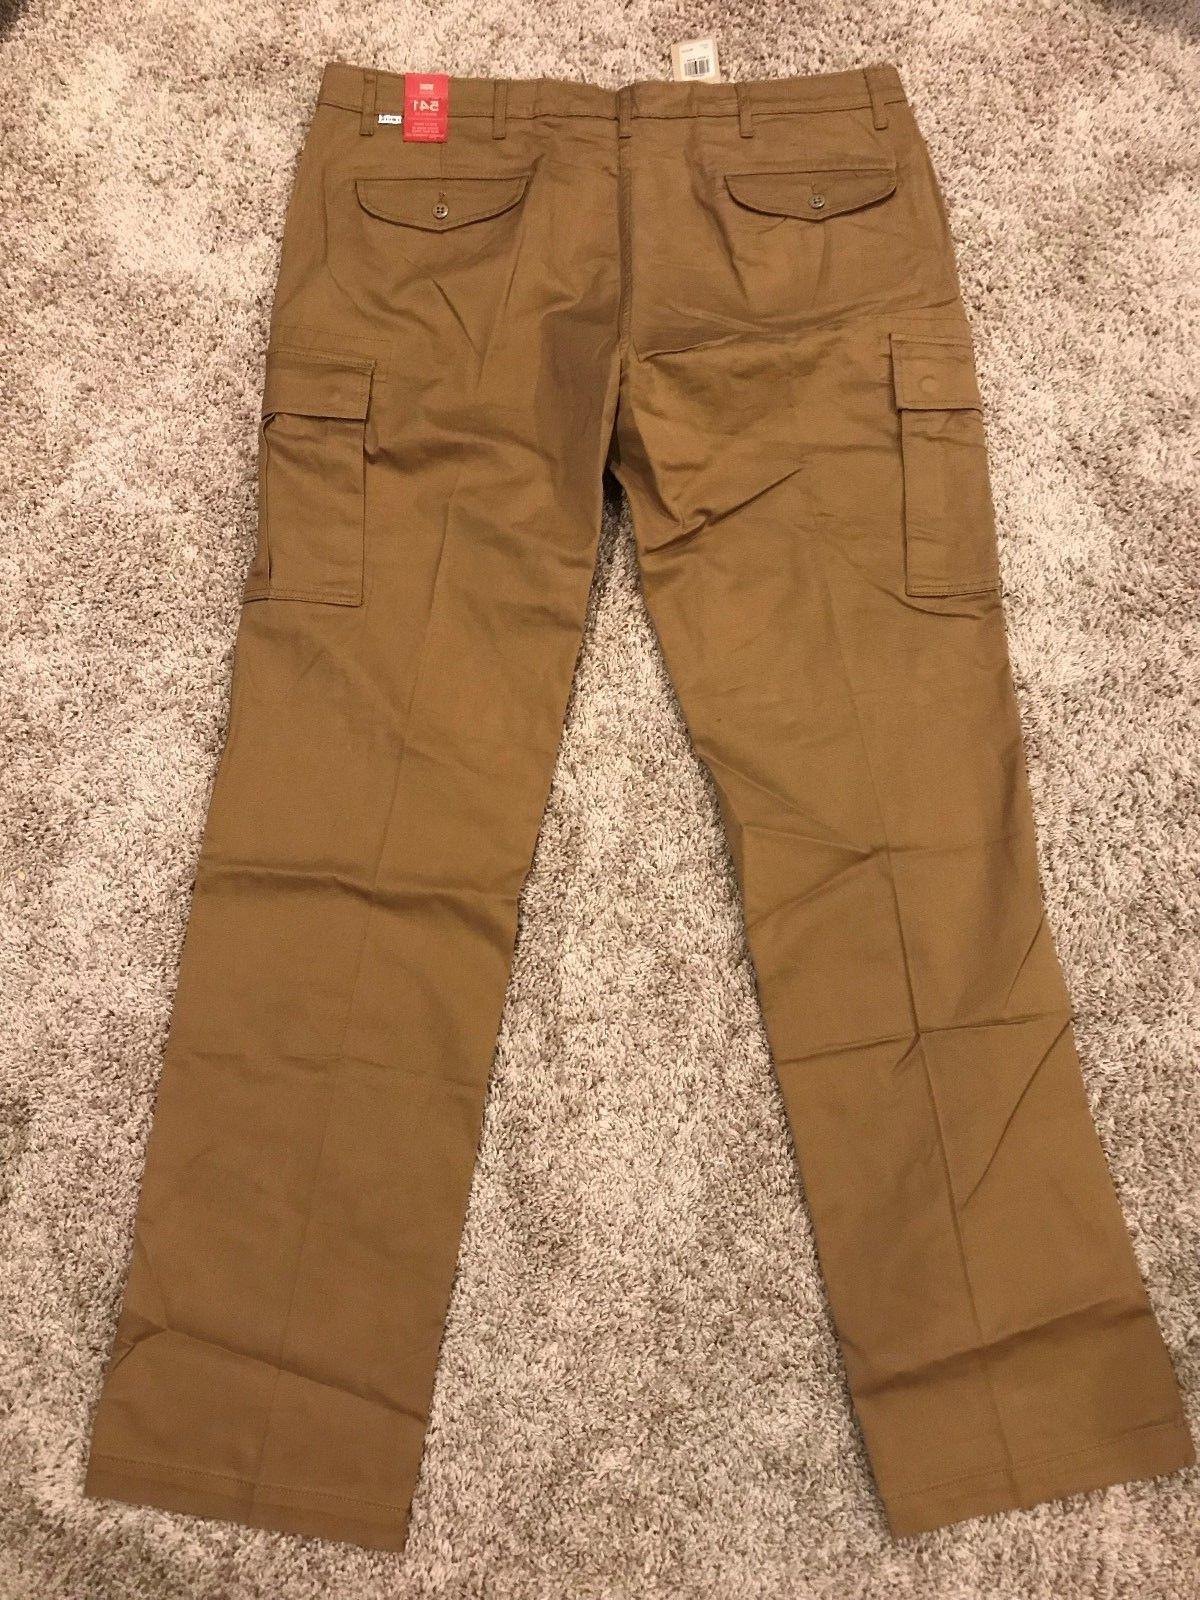 MENS 541 BIG&TALL MANY NEW